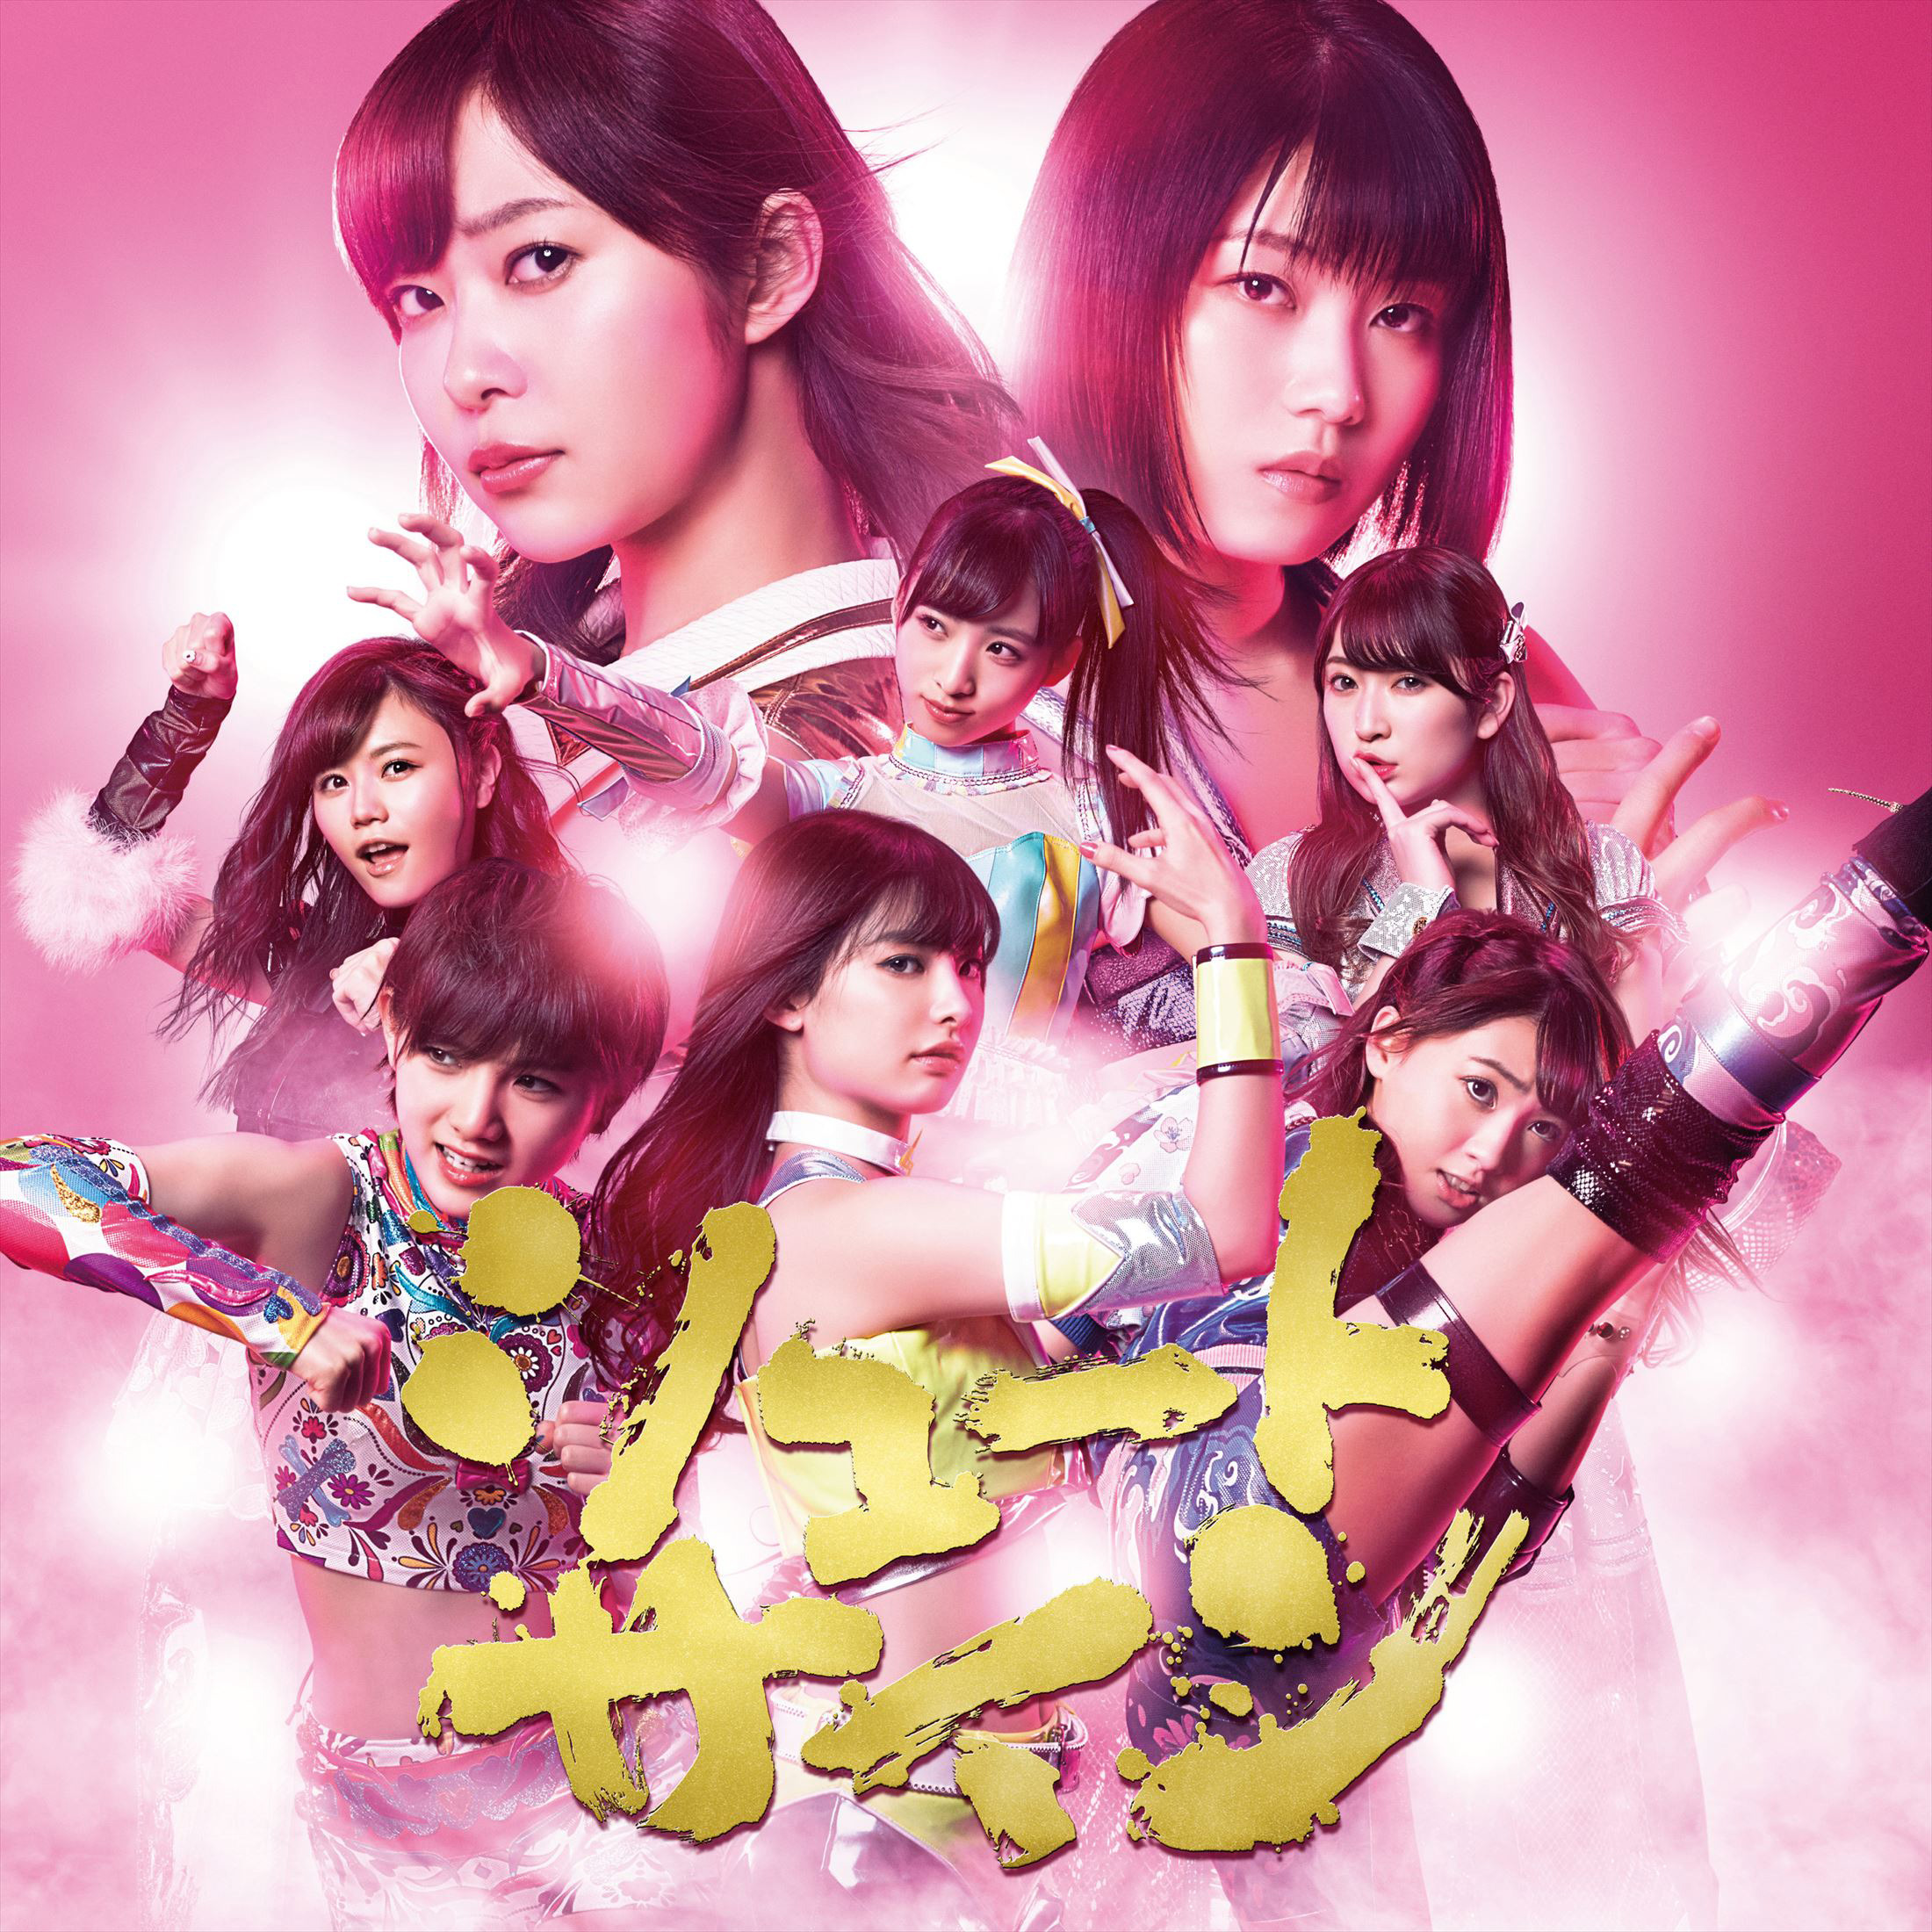 NekoPOP-AKB48-Shoot-Sign-best-cover-announce1